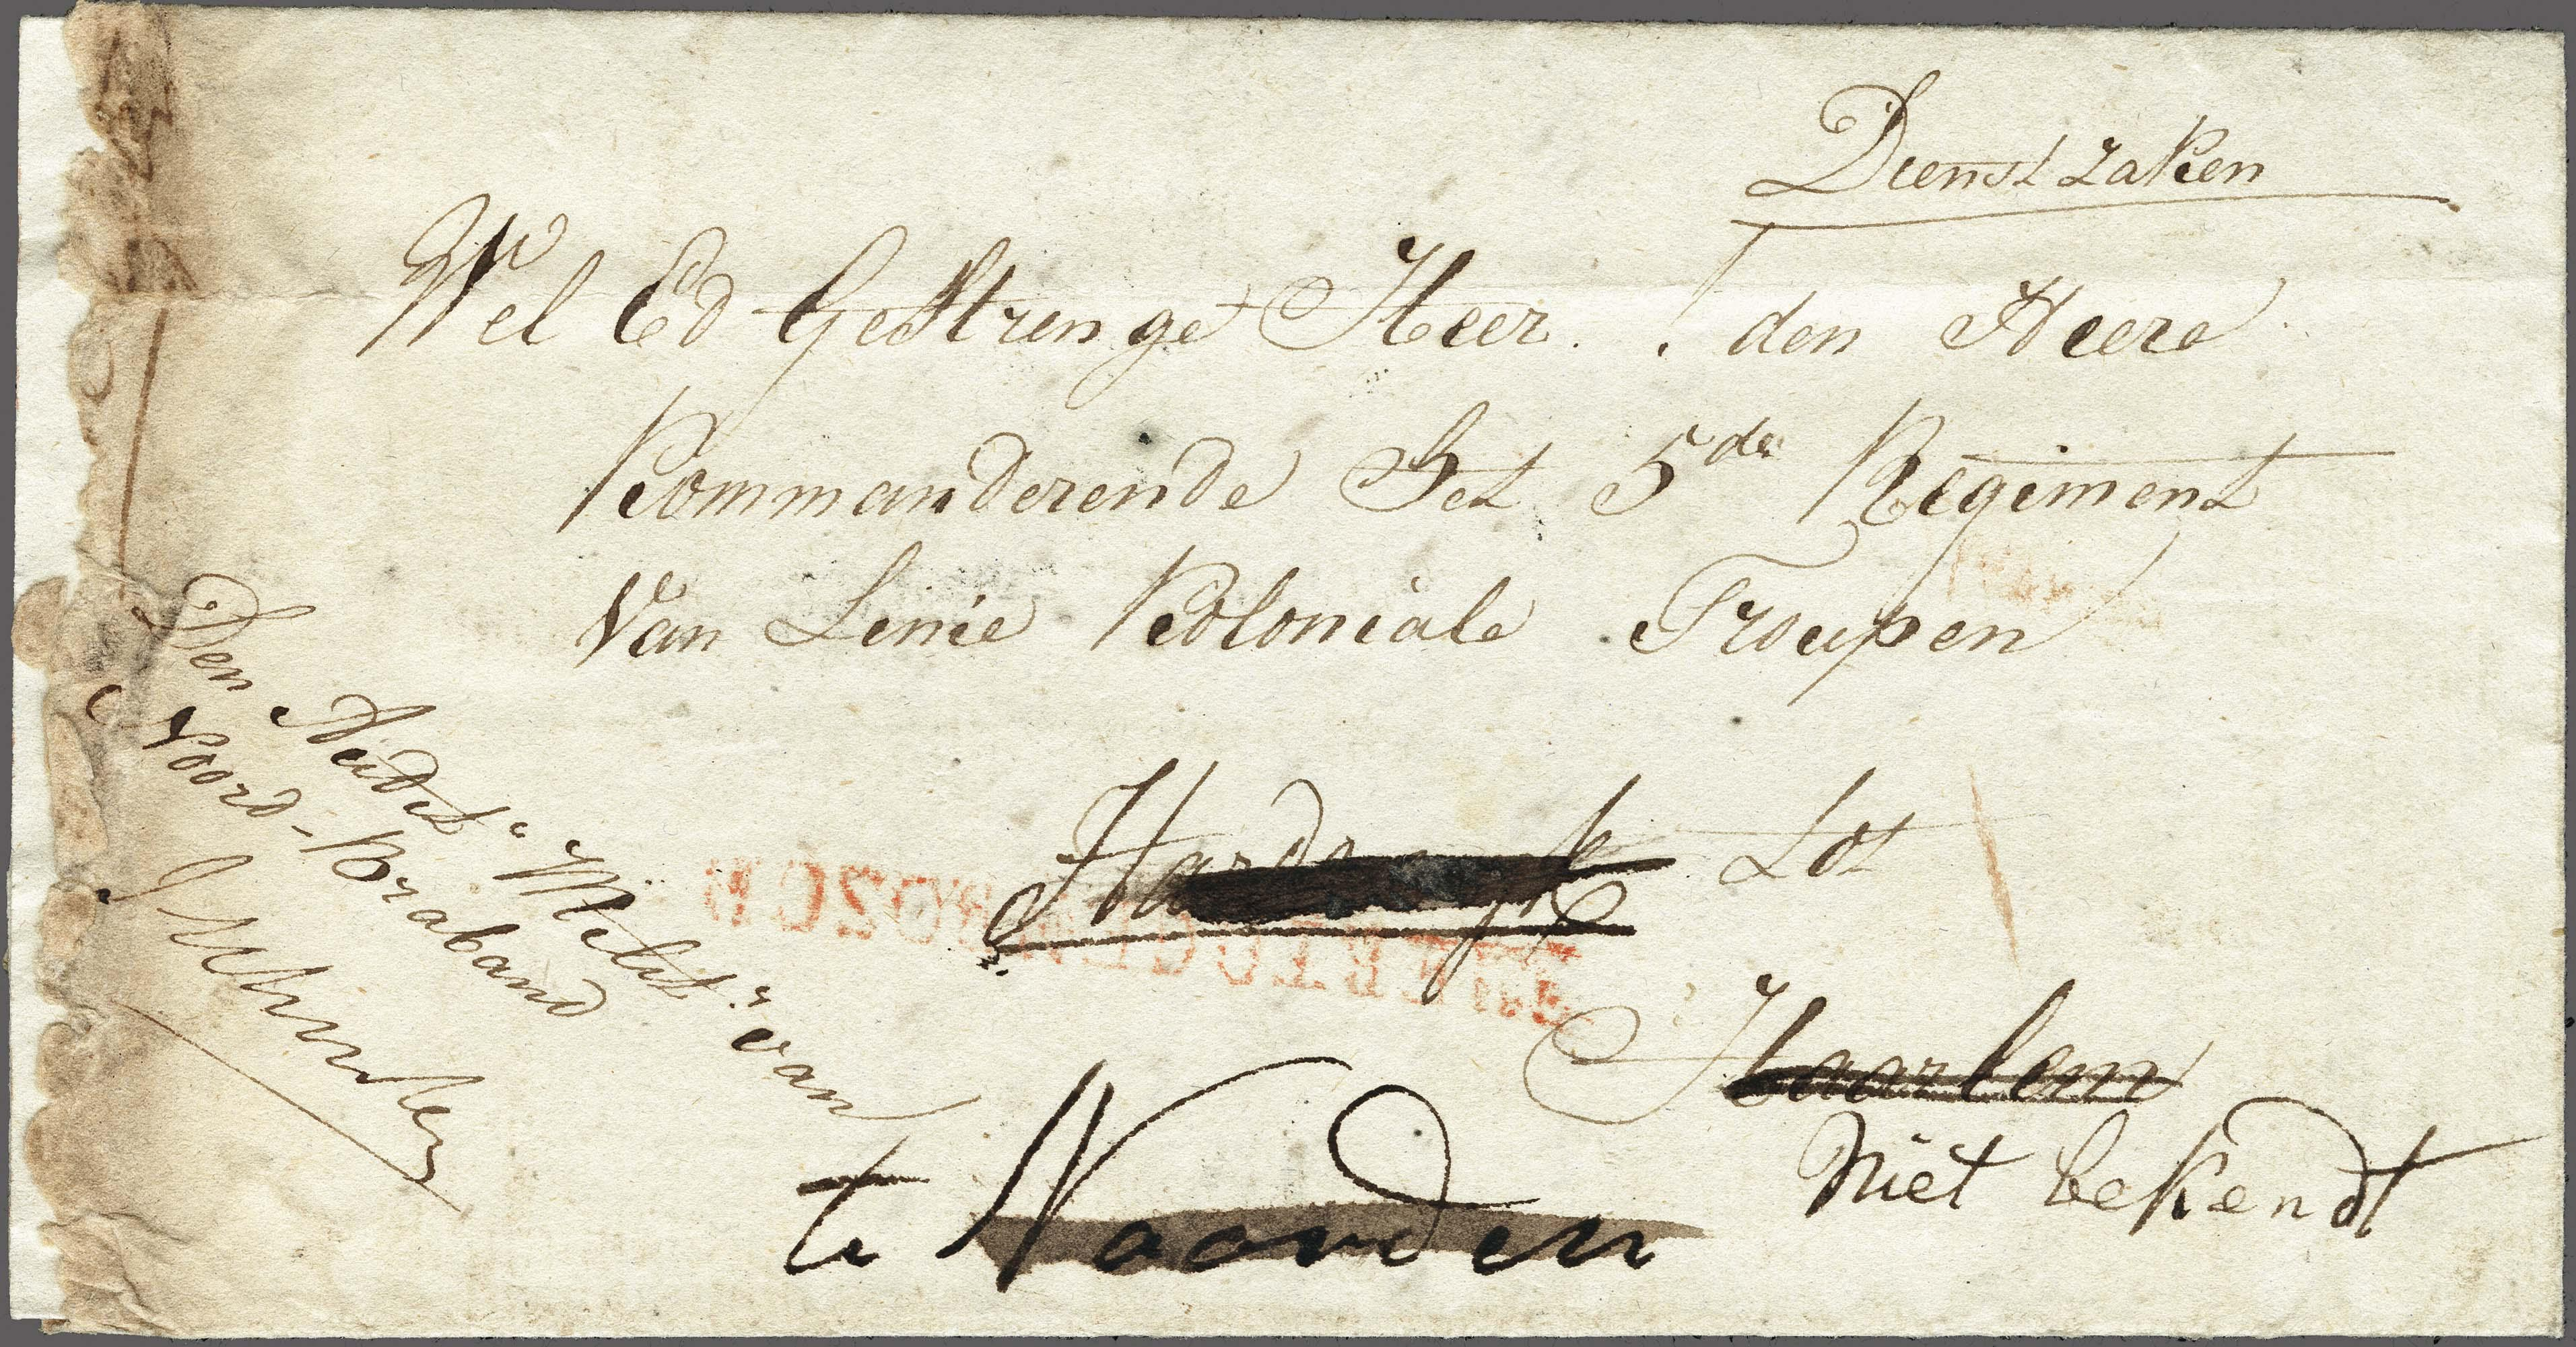 Lot 2397 - Netherlands and former colonies Netherlands -  Corinphila Veilingen Auction 250-253 - Day 3 - Netherlands and former colonies - Single lots & Picture postcards